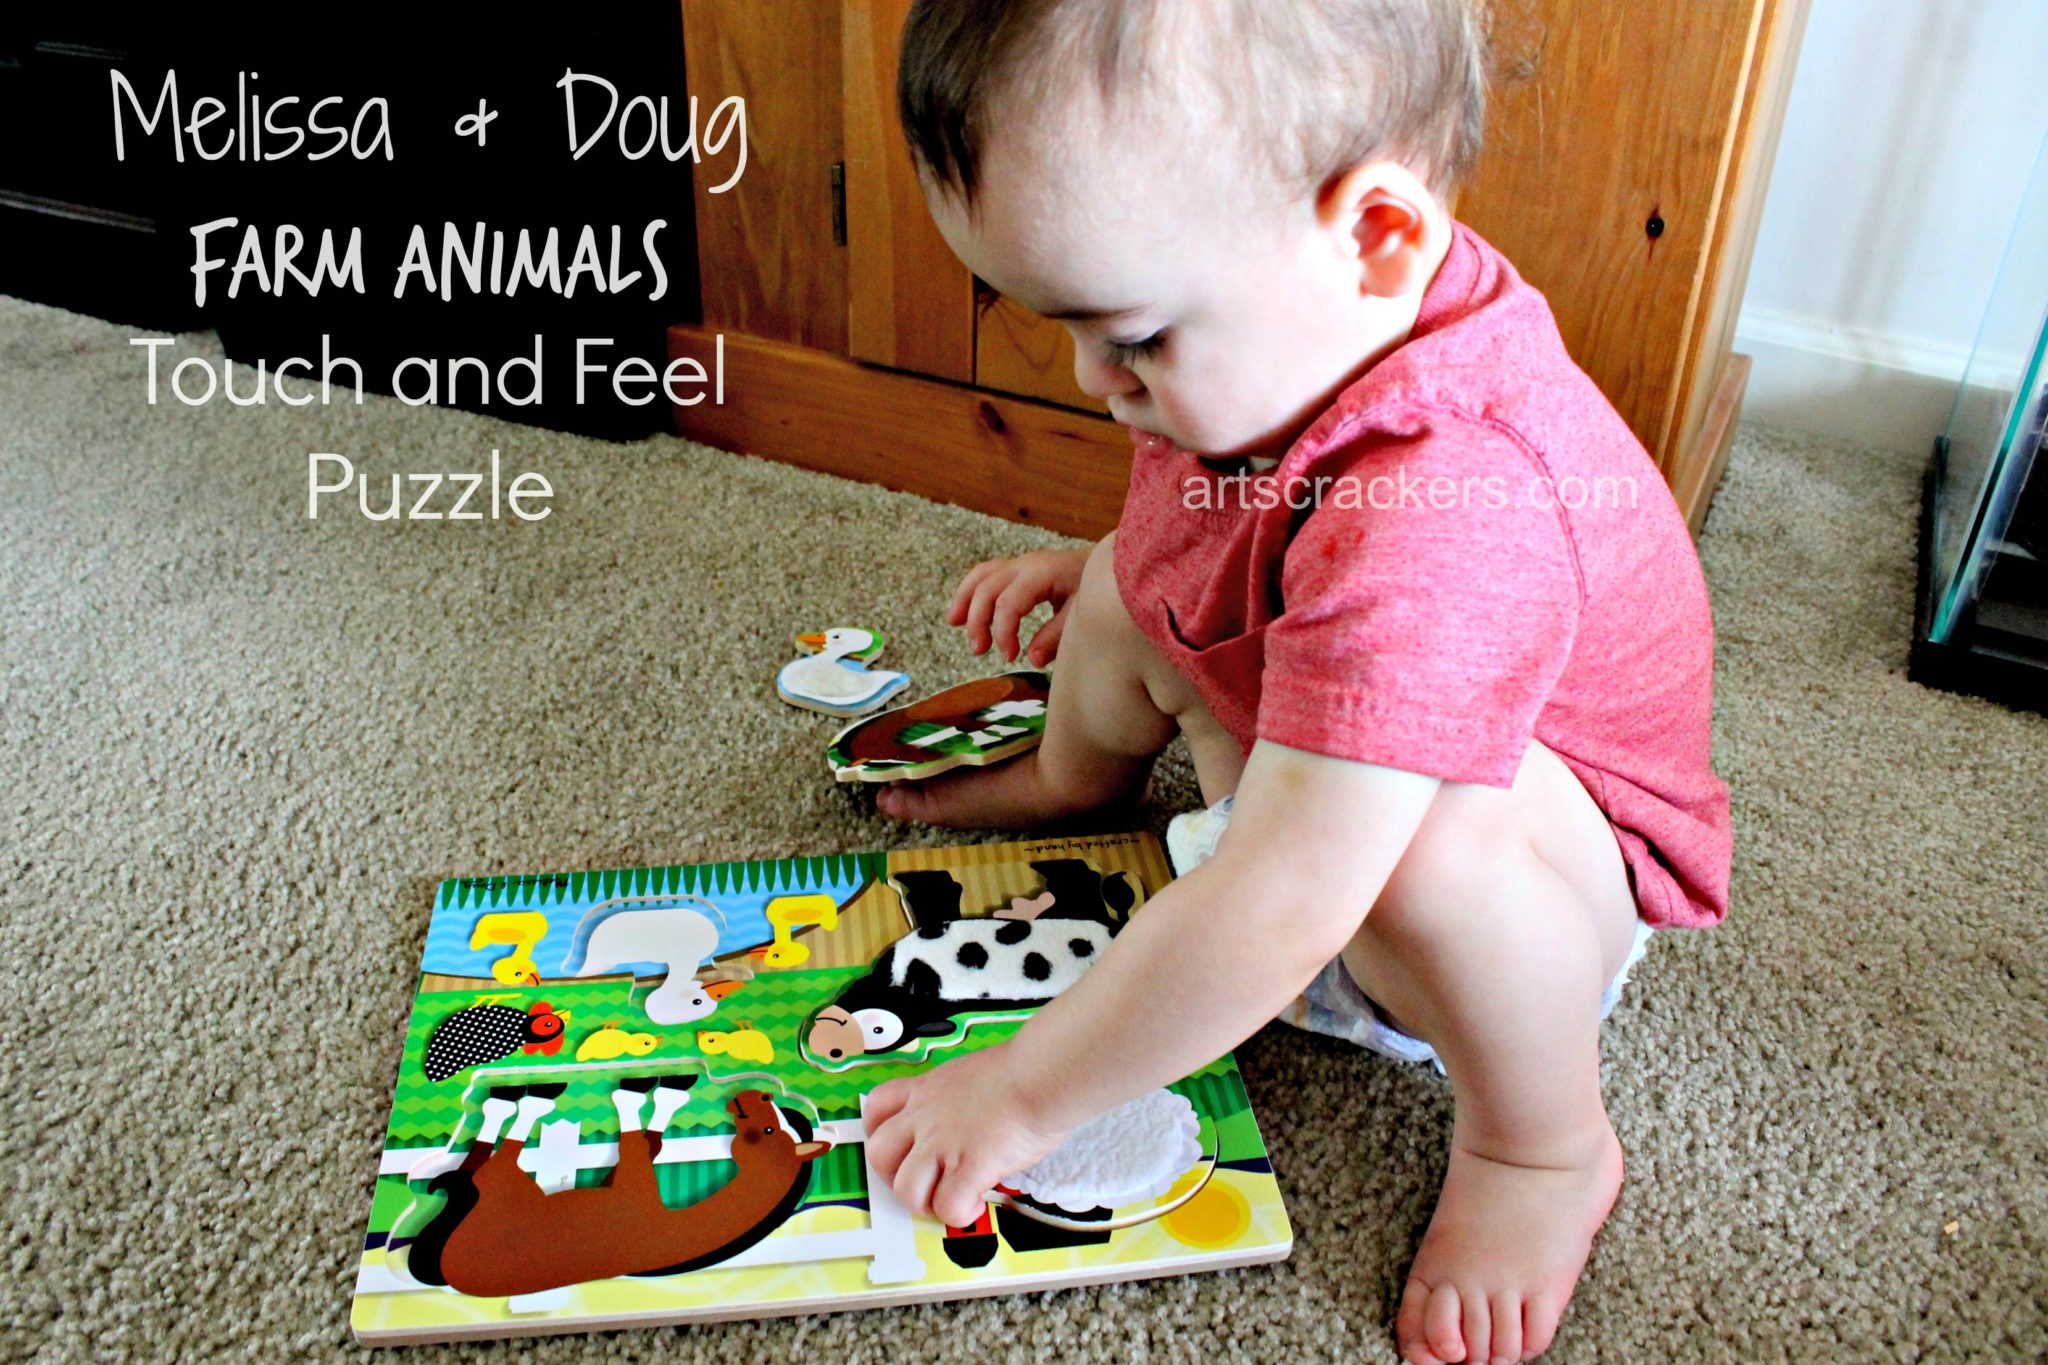 Melissa and Doug Farm Animals Touch and Feel Puzzle. Click the picture to read the review.